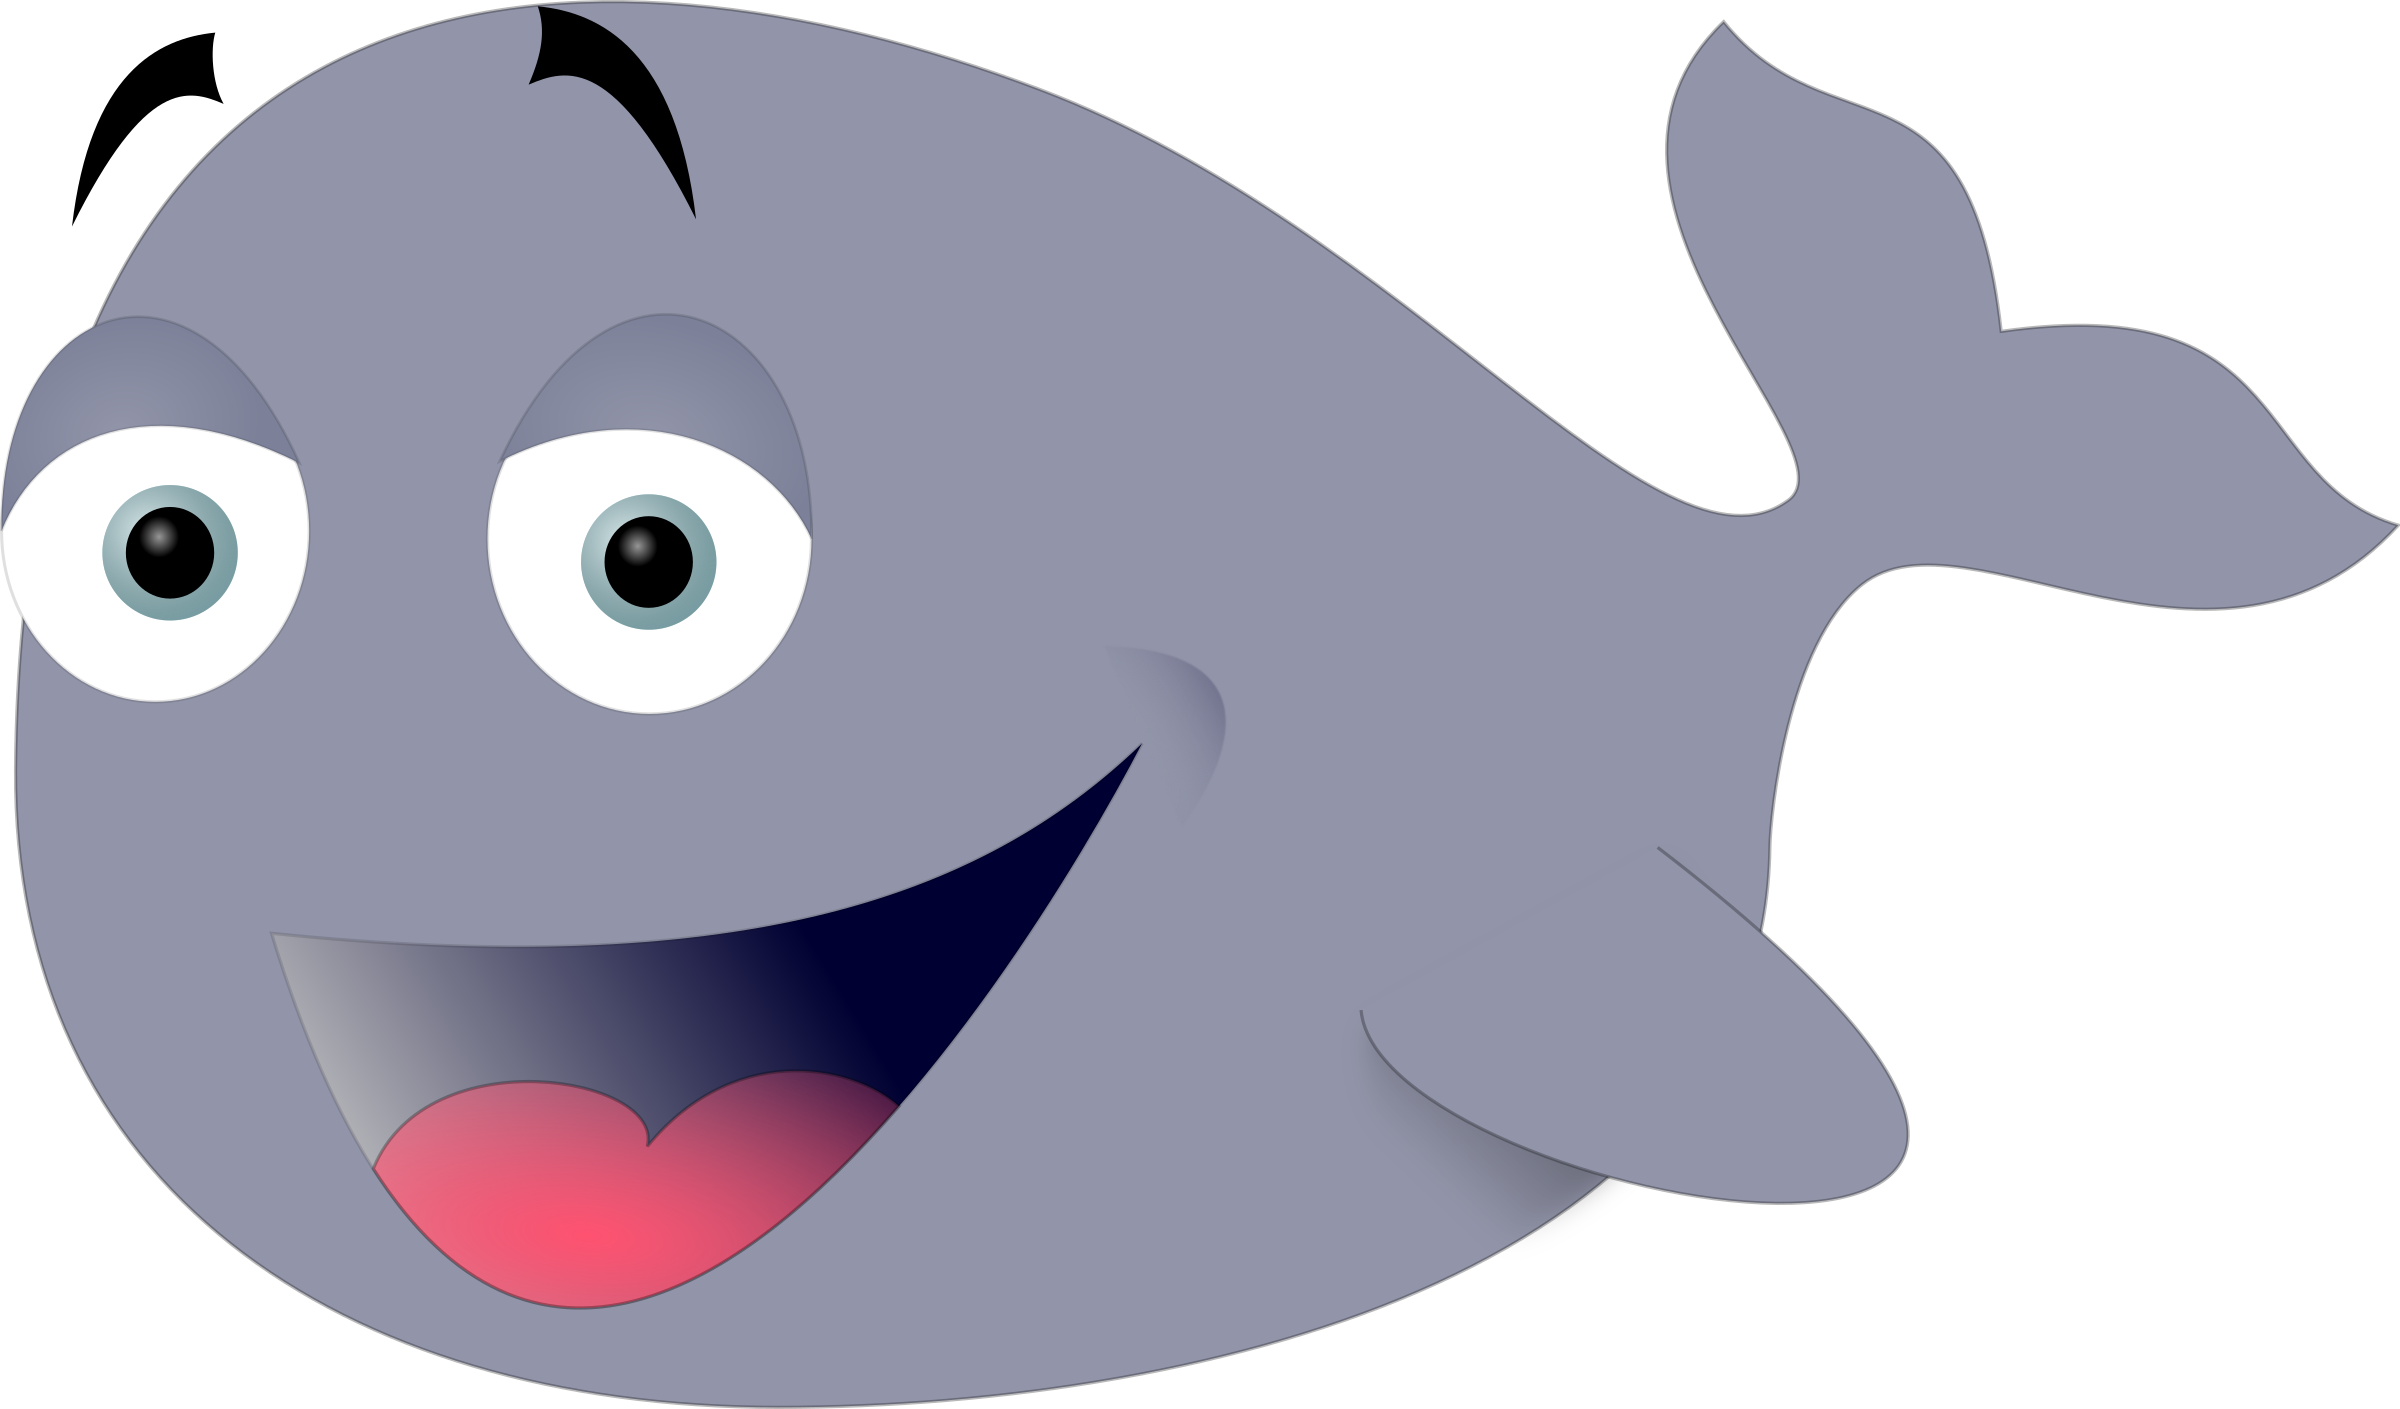 Fish mouth clipart picture transparent stock Whale Open Mouth Clipart & Whale Open Mouth Clip Art Images - OnClipart picture transparent stock